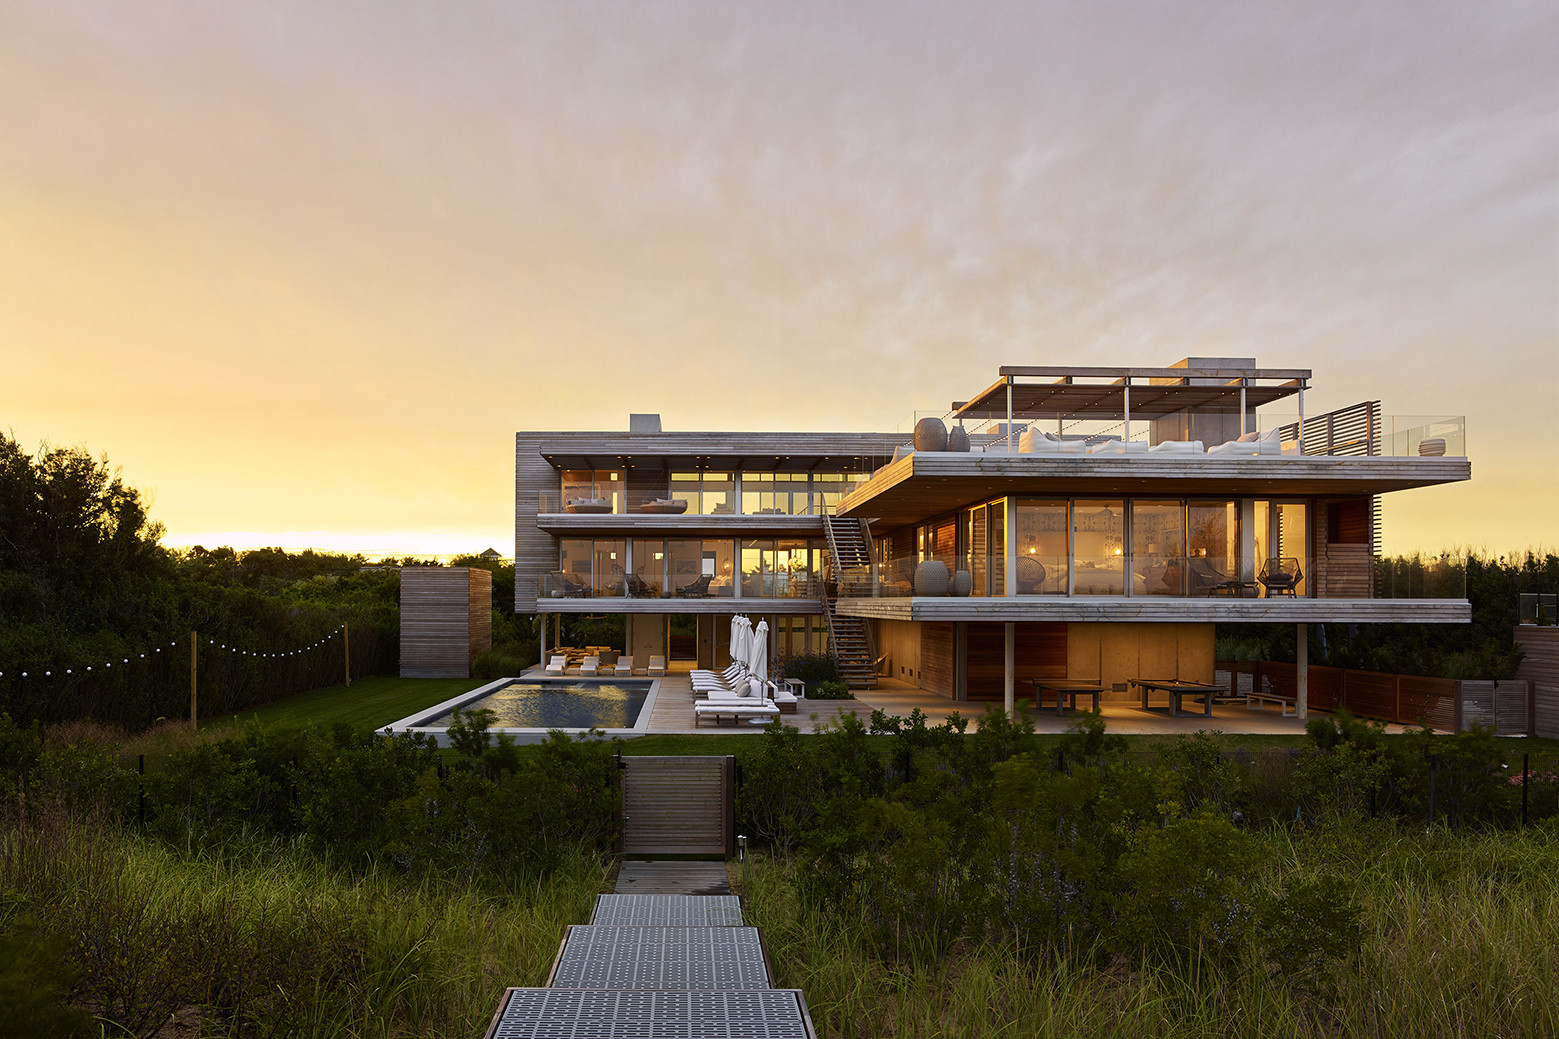 Ocean Deck House / Stelle Lomont Rouhani Architects, © Matthew Carbone